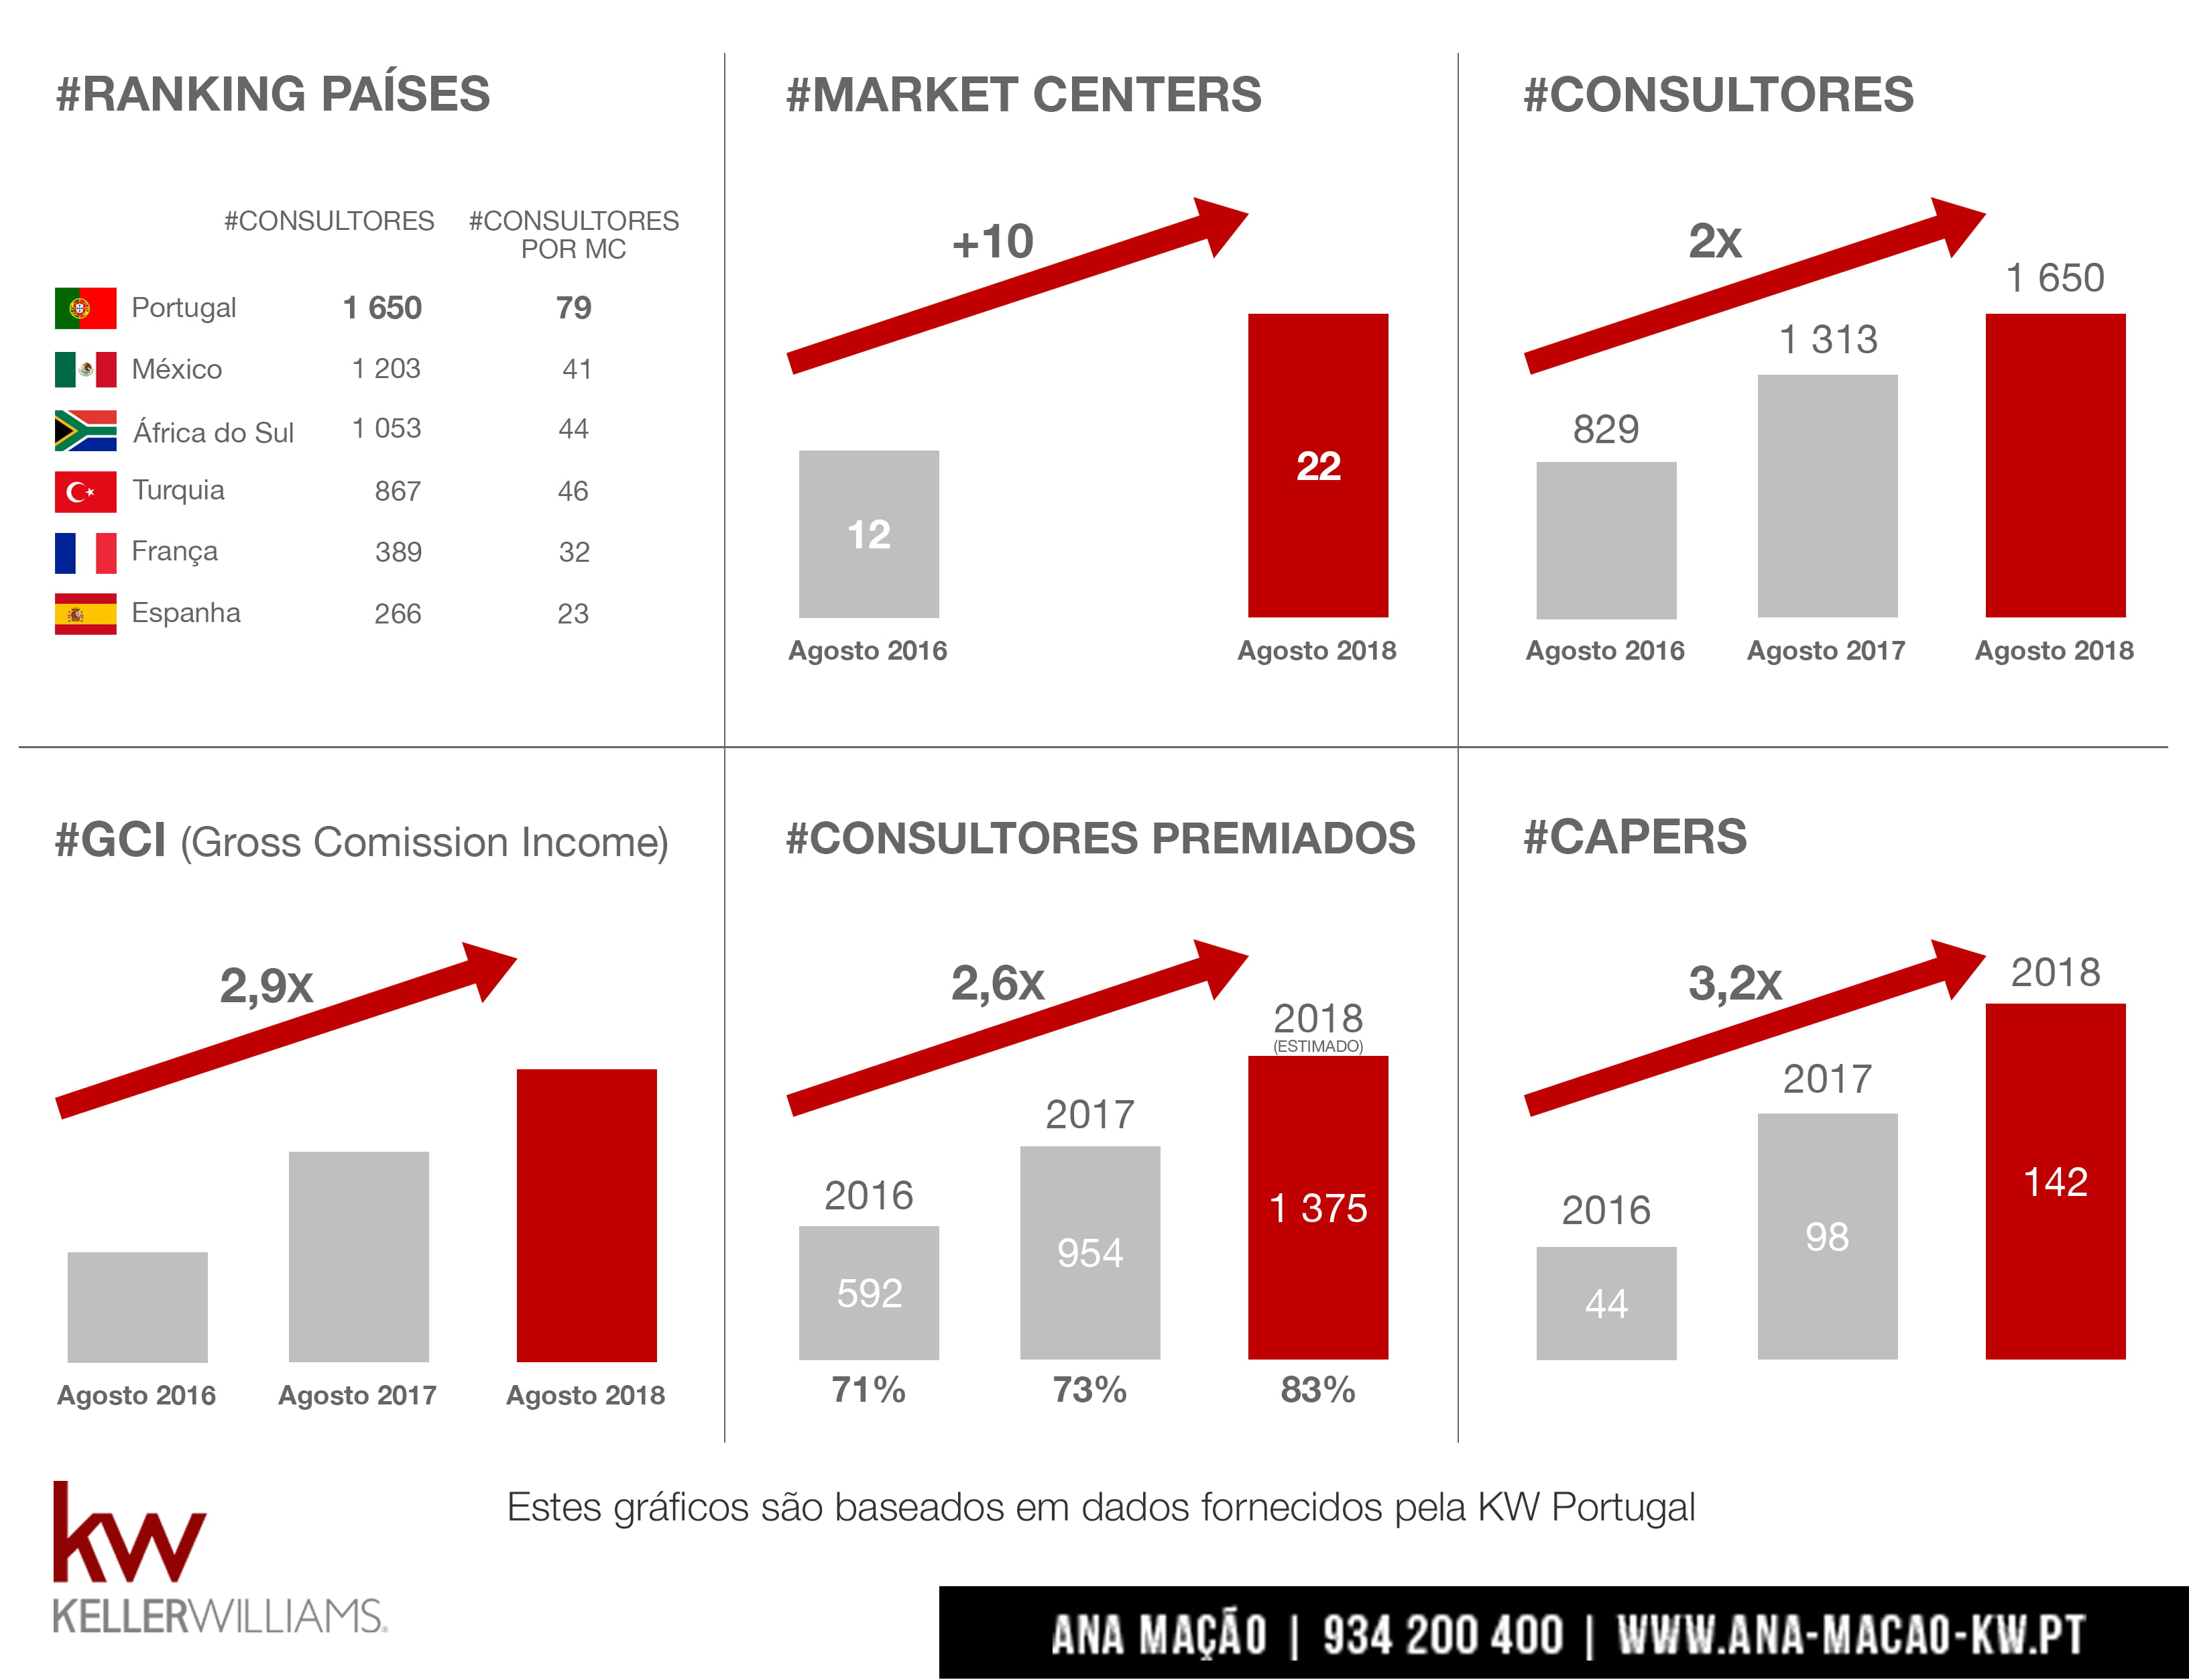 Keller Williams Portugal growth charts - 2016, 2017, 2018